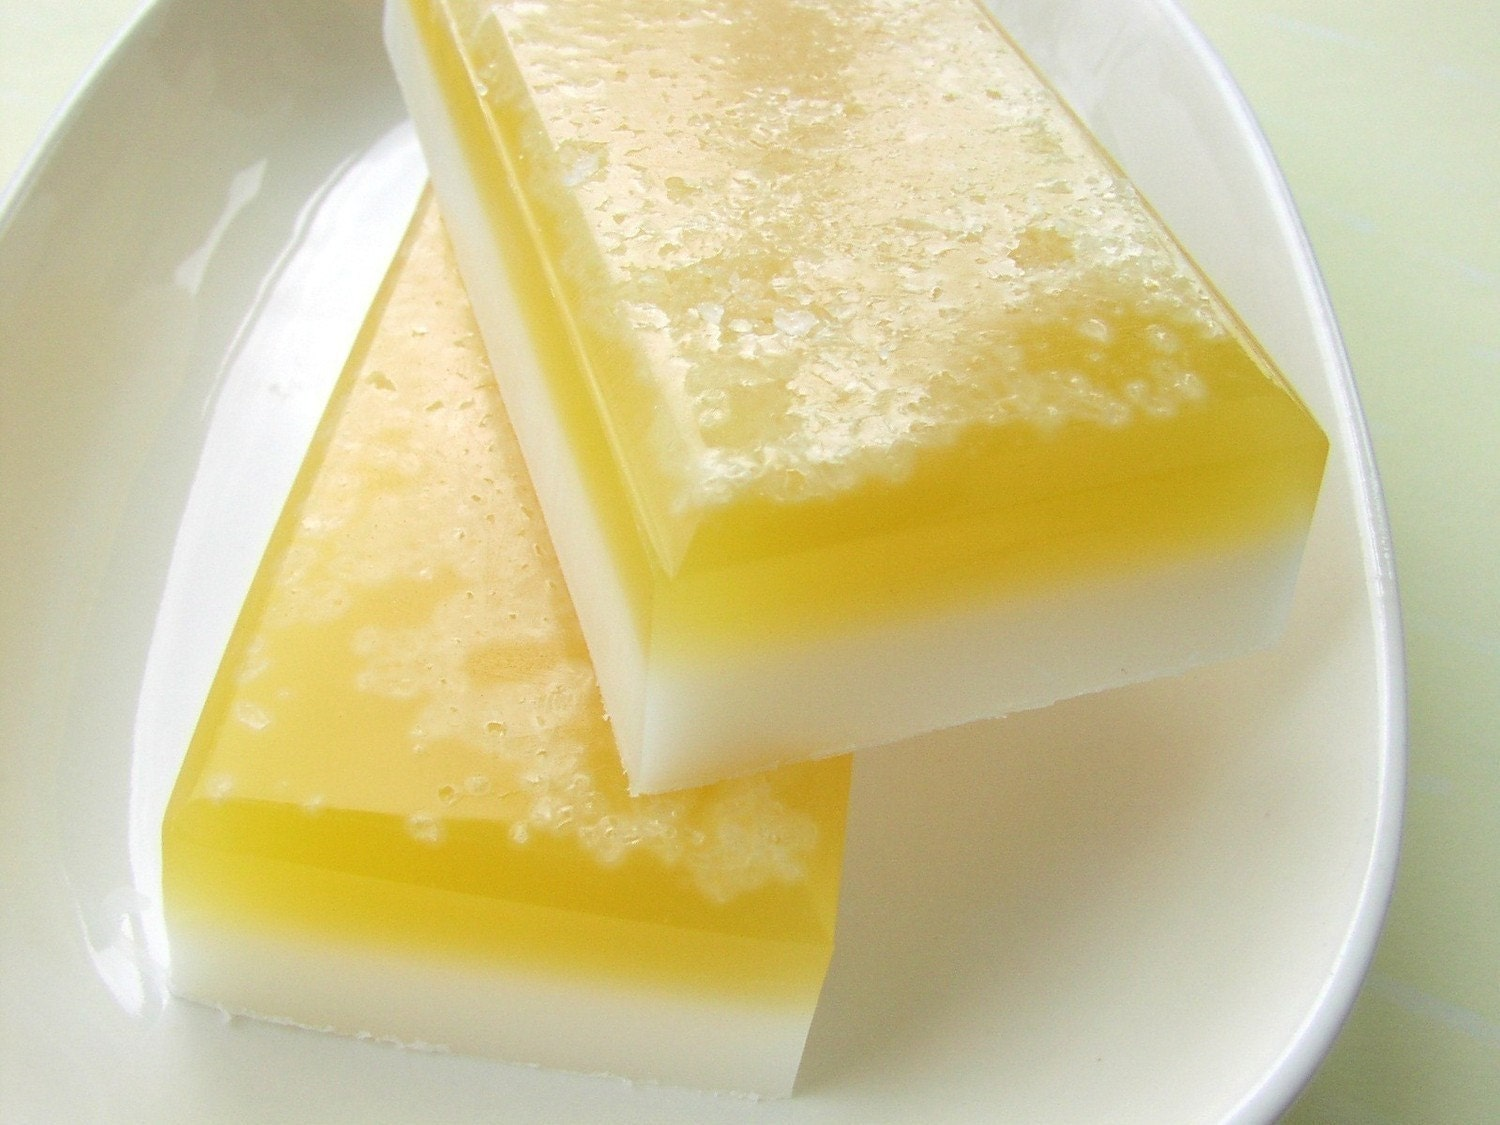 Soap - Lemon Lane Salt Bar Glycerin Soap